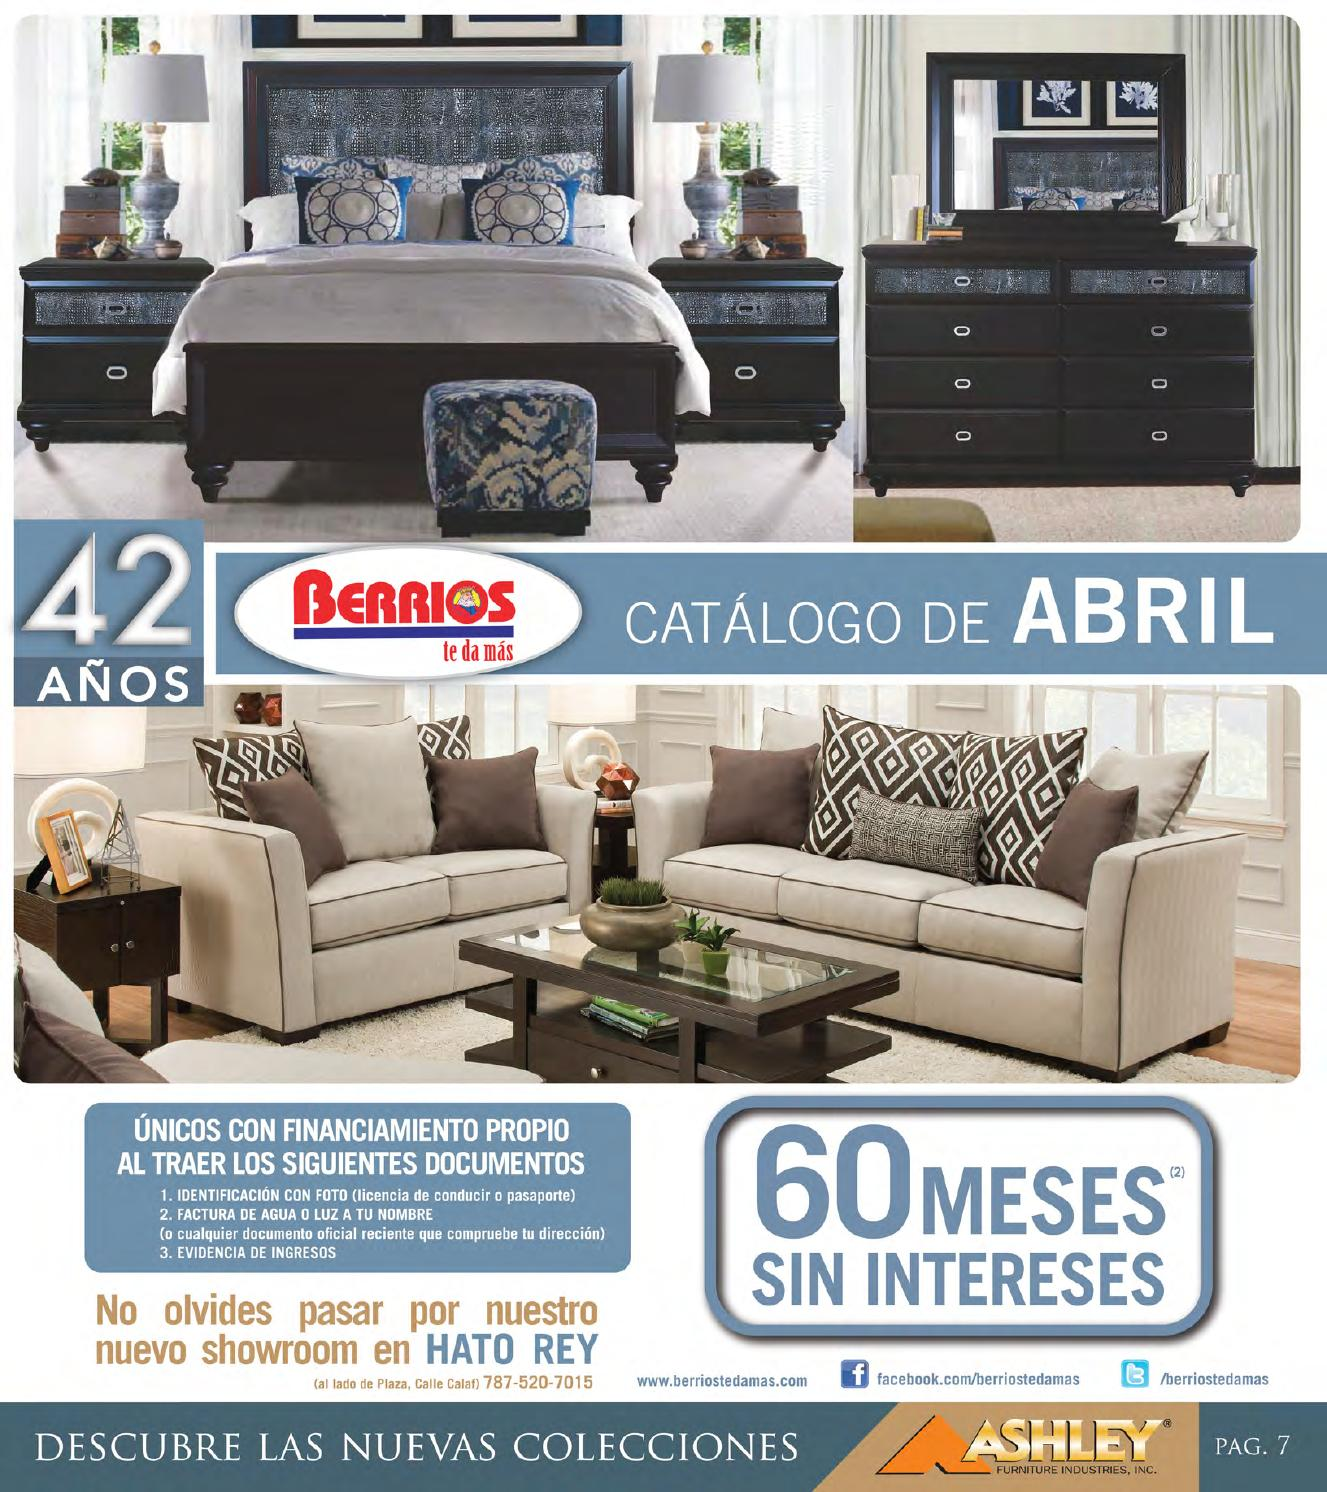 Delightful Mueblerías Berrios | Shopper Catálogo De Abril By Berrios   Issuu